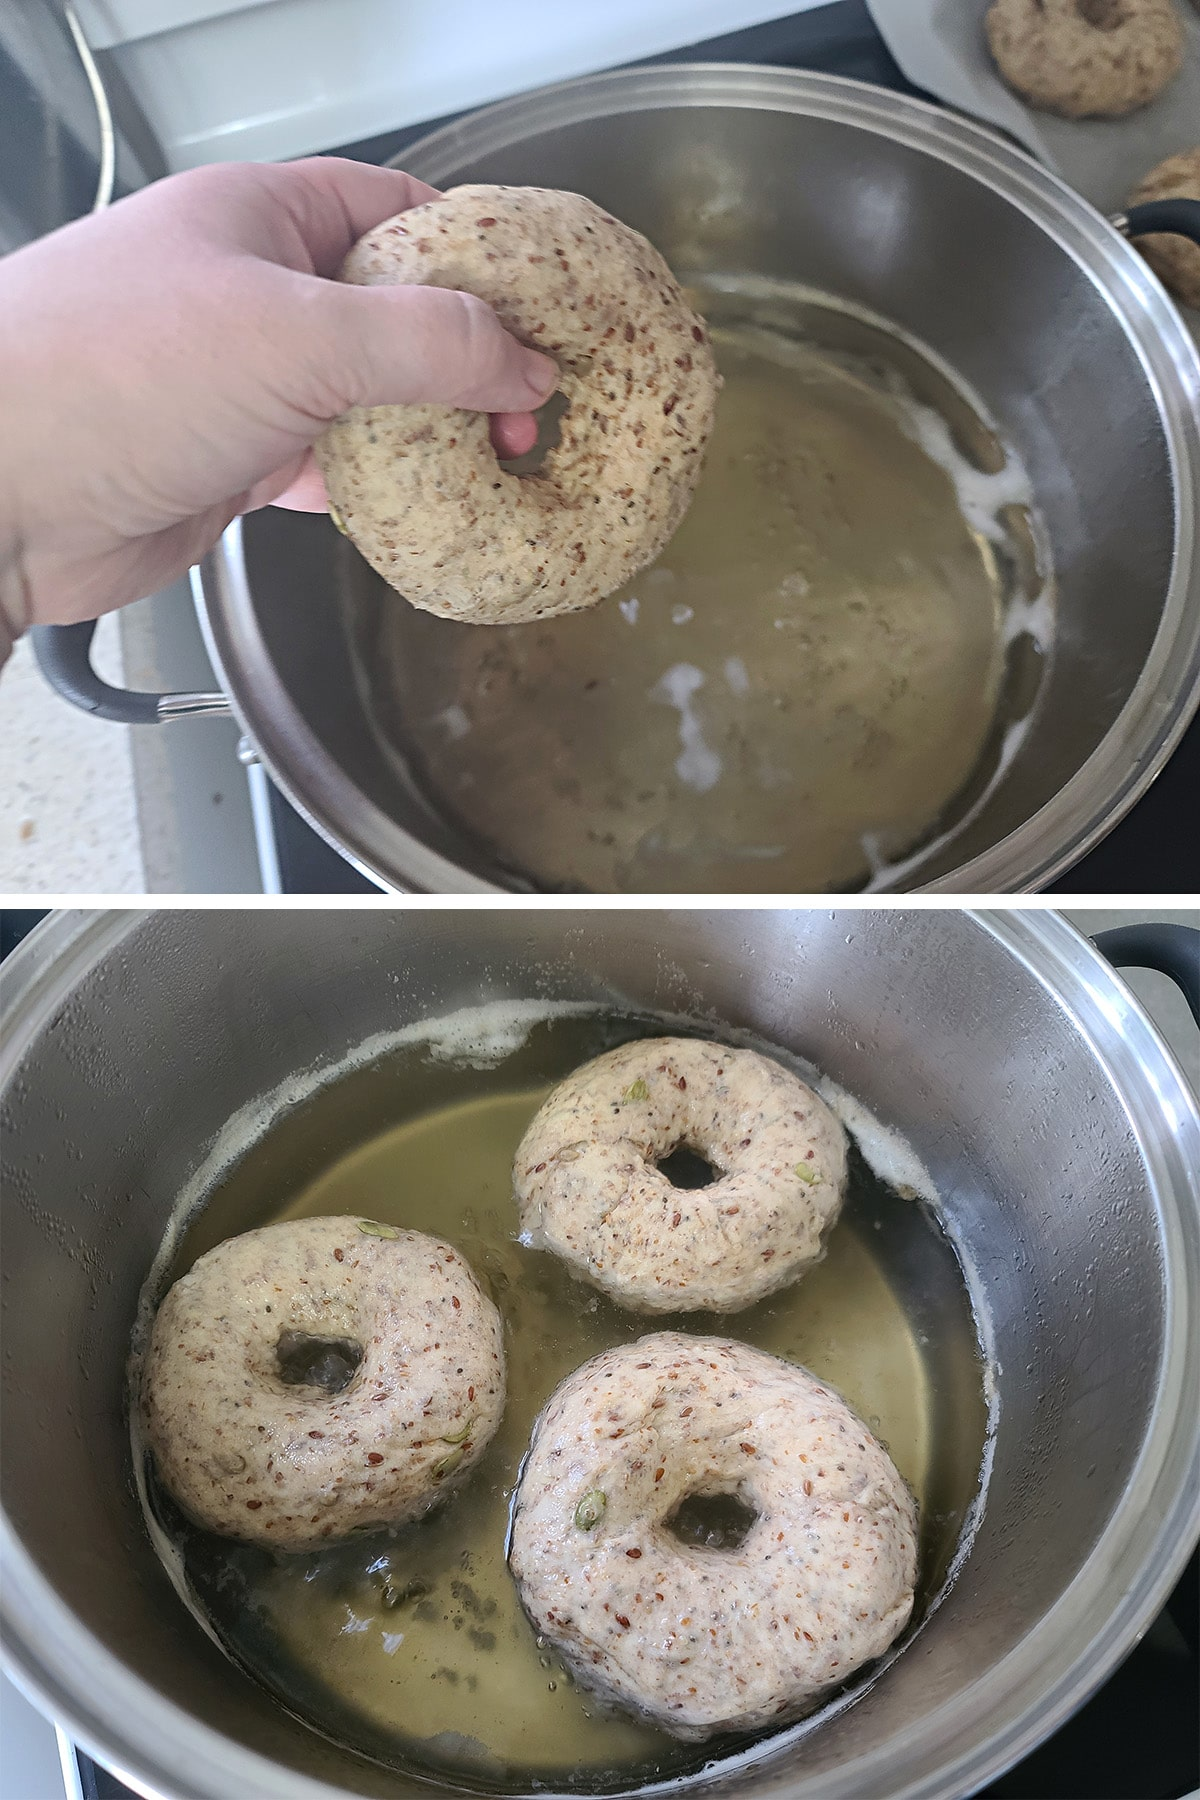 A two part image showing a hand holding a formed bagel over a pot of boiling honey water, and then 3 bagels simmering in the pot.